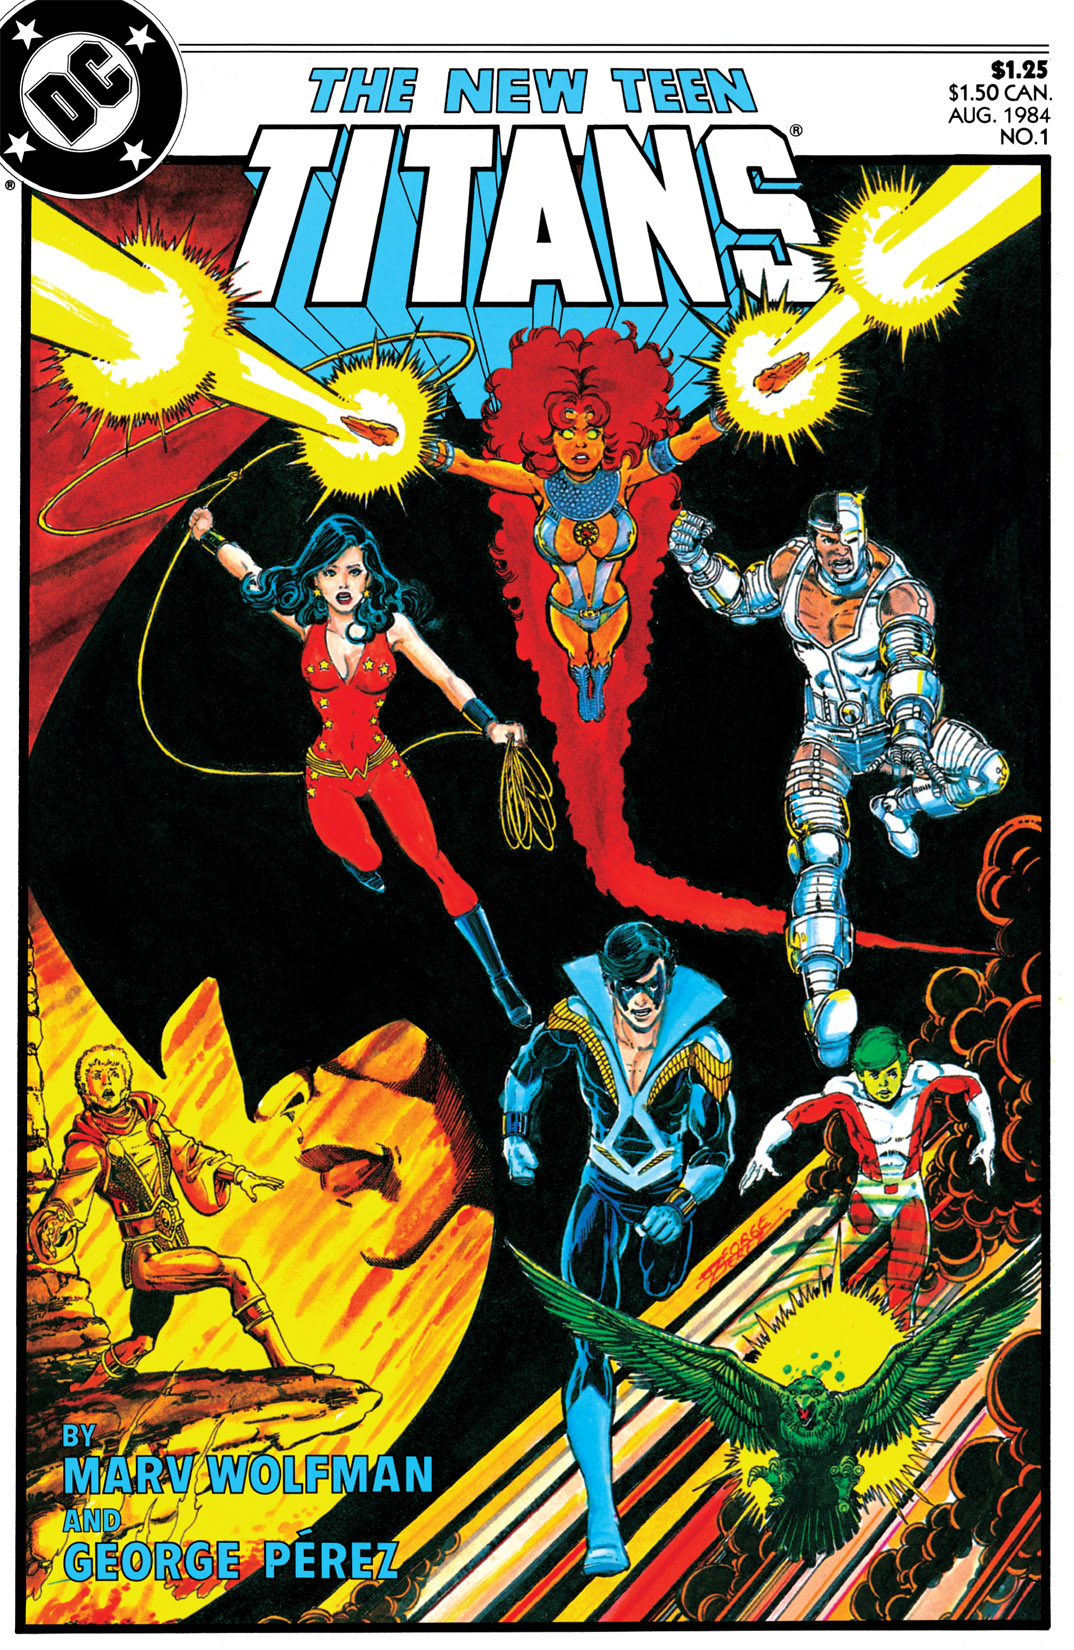 New Teen Titans Vol 2 1 TEEN SUICIDE IS THE THIRD LEADING CAUSE OF DEATH AMONG TEENS, ...